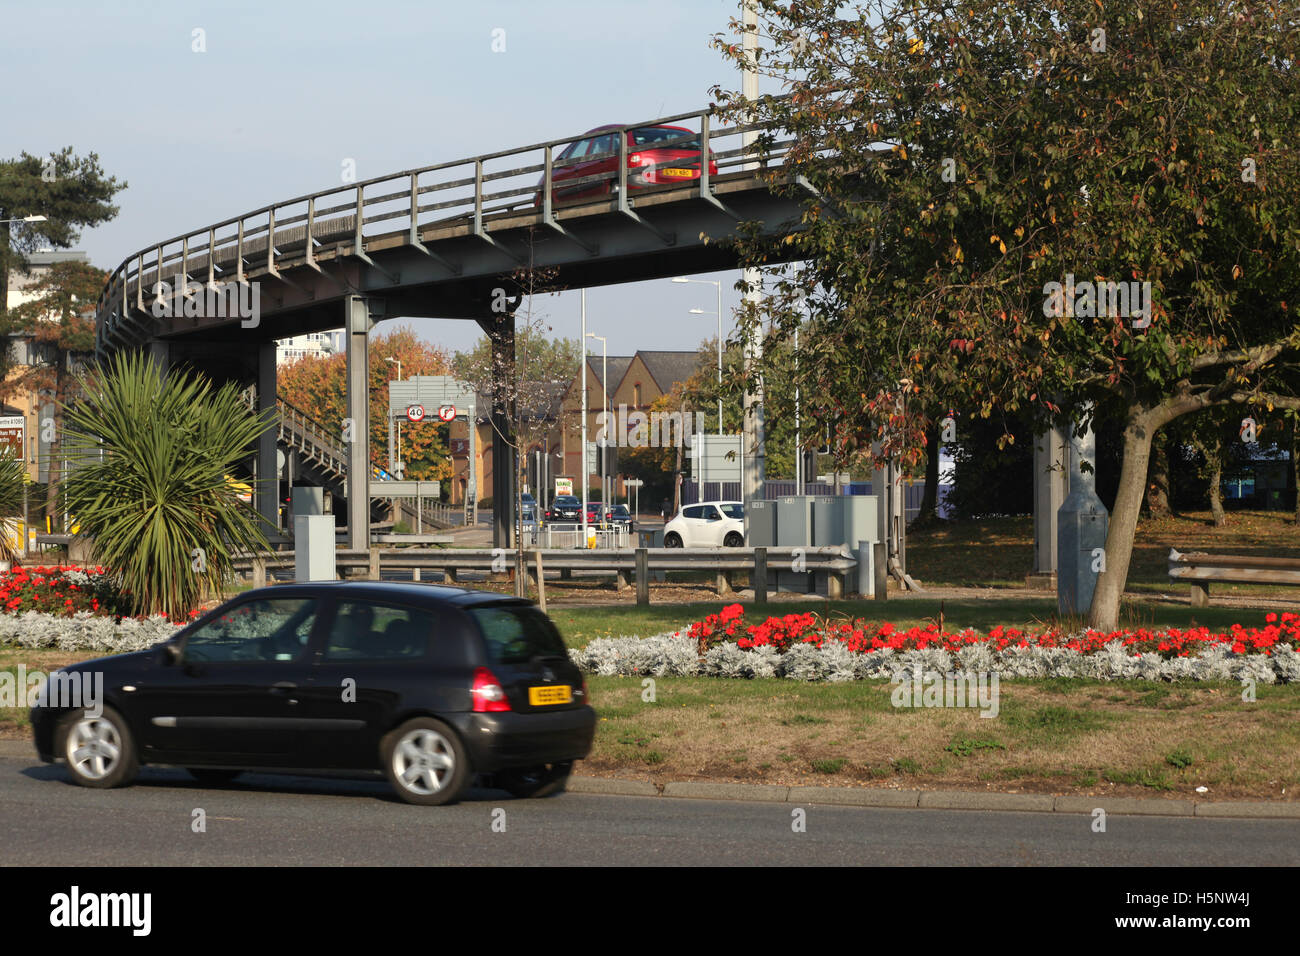 Army & Navy flyover and roundabout, Chelmsford, Essex - Stock Image